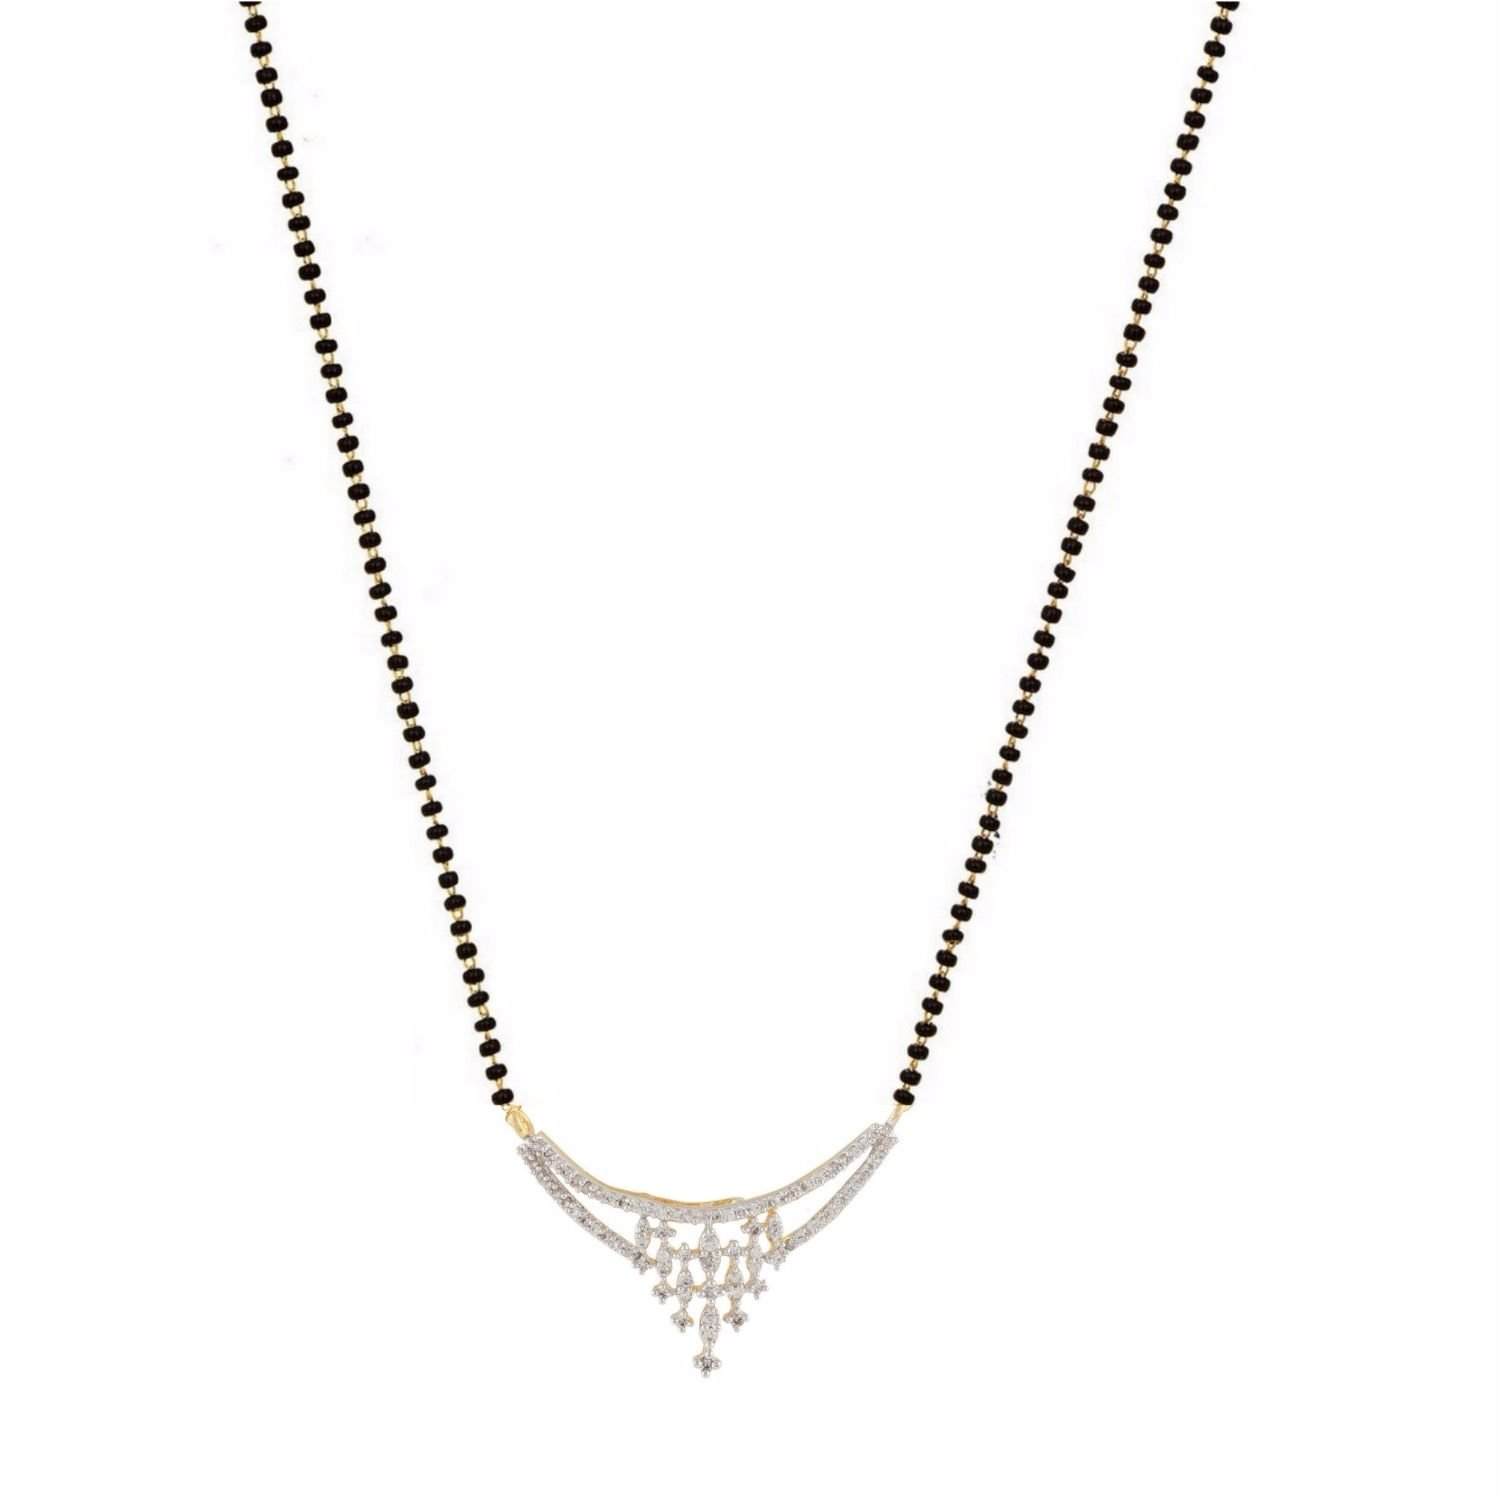 Efulgenz Indian Bollywood Traditional Gold Plated American Diamond CZ Mangalsutra Pendant Necklace Jewelry for Women by Efulgenz (Image #1)